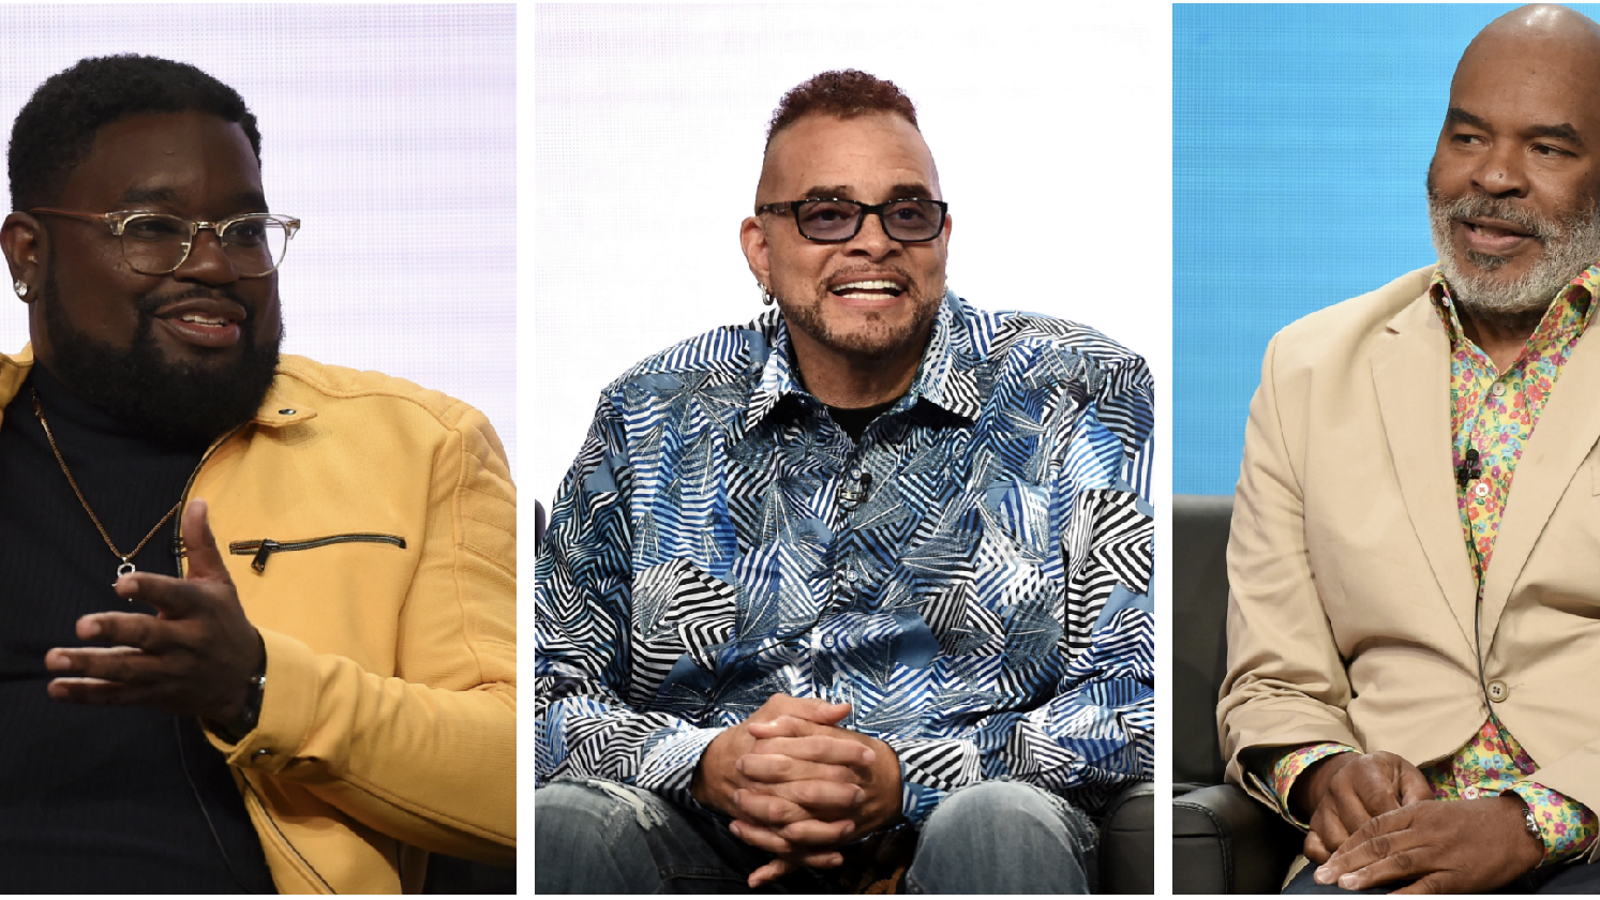 Lil Rel, Sinbad and David Alan Grier Bring the Funny to Fox This Fall